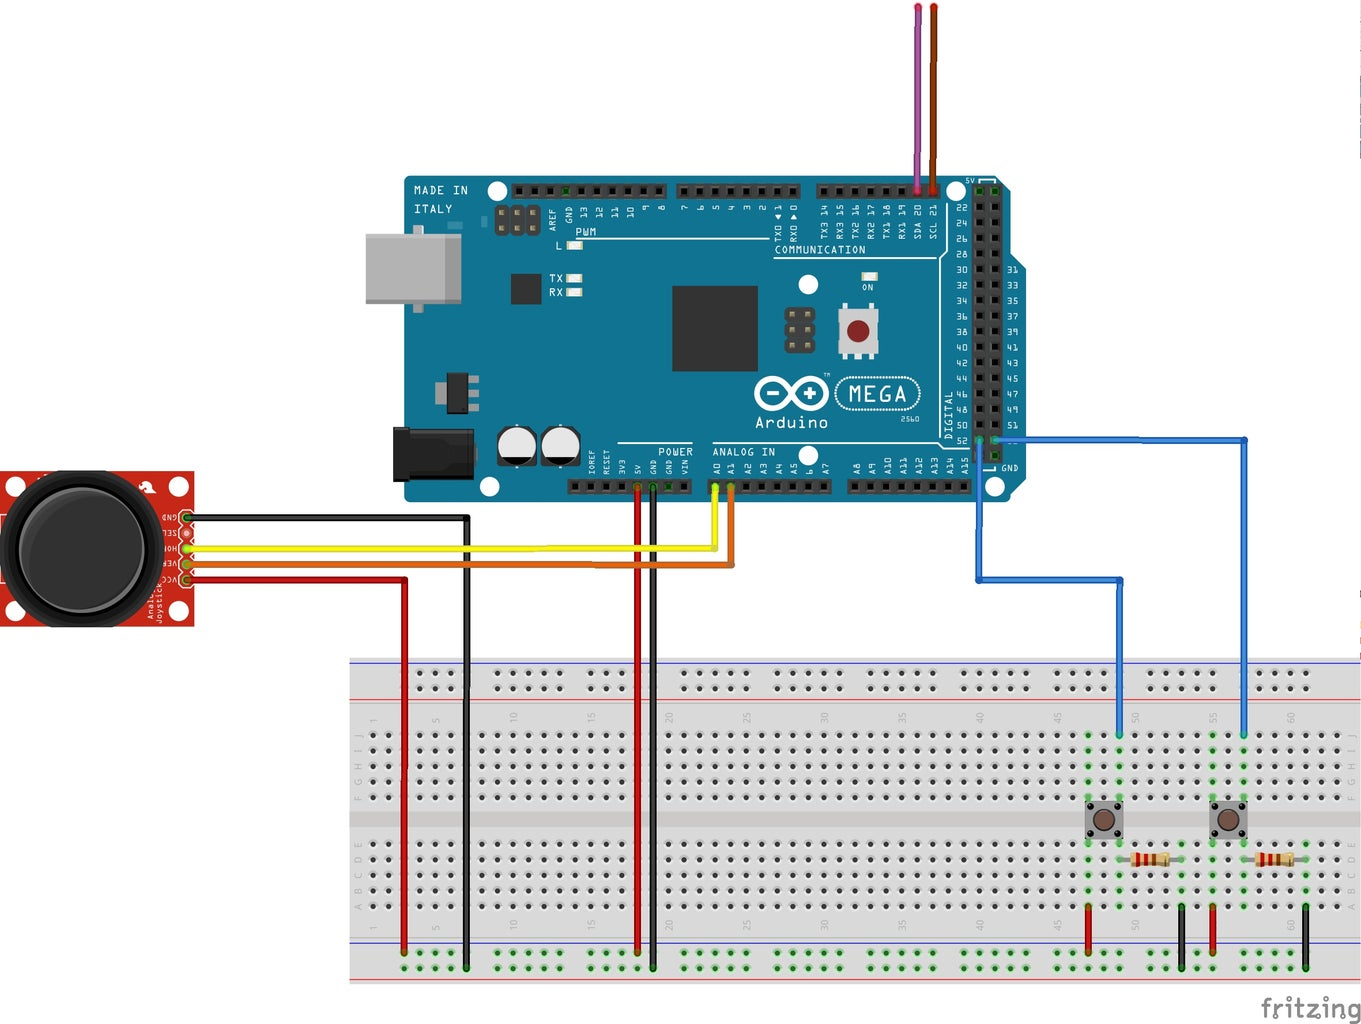 Connecting the Sensors to the Raspberry Pi